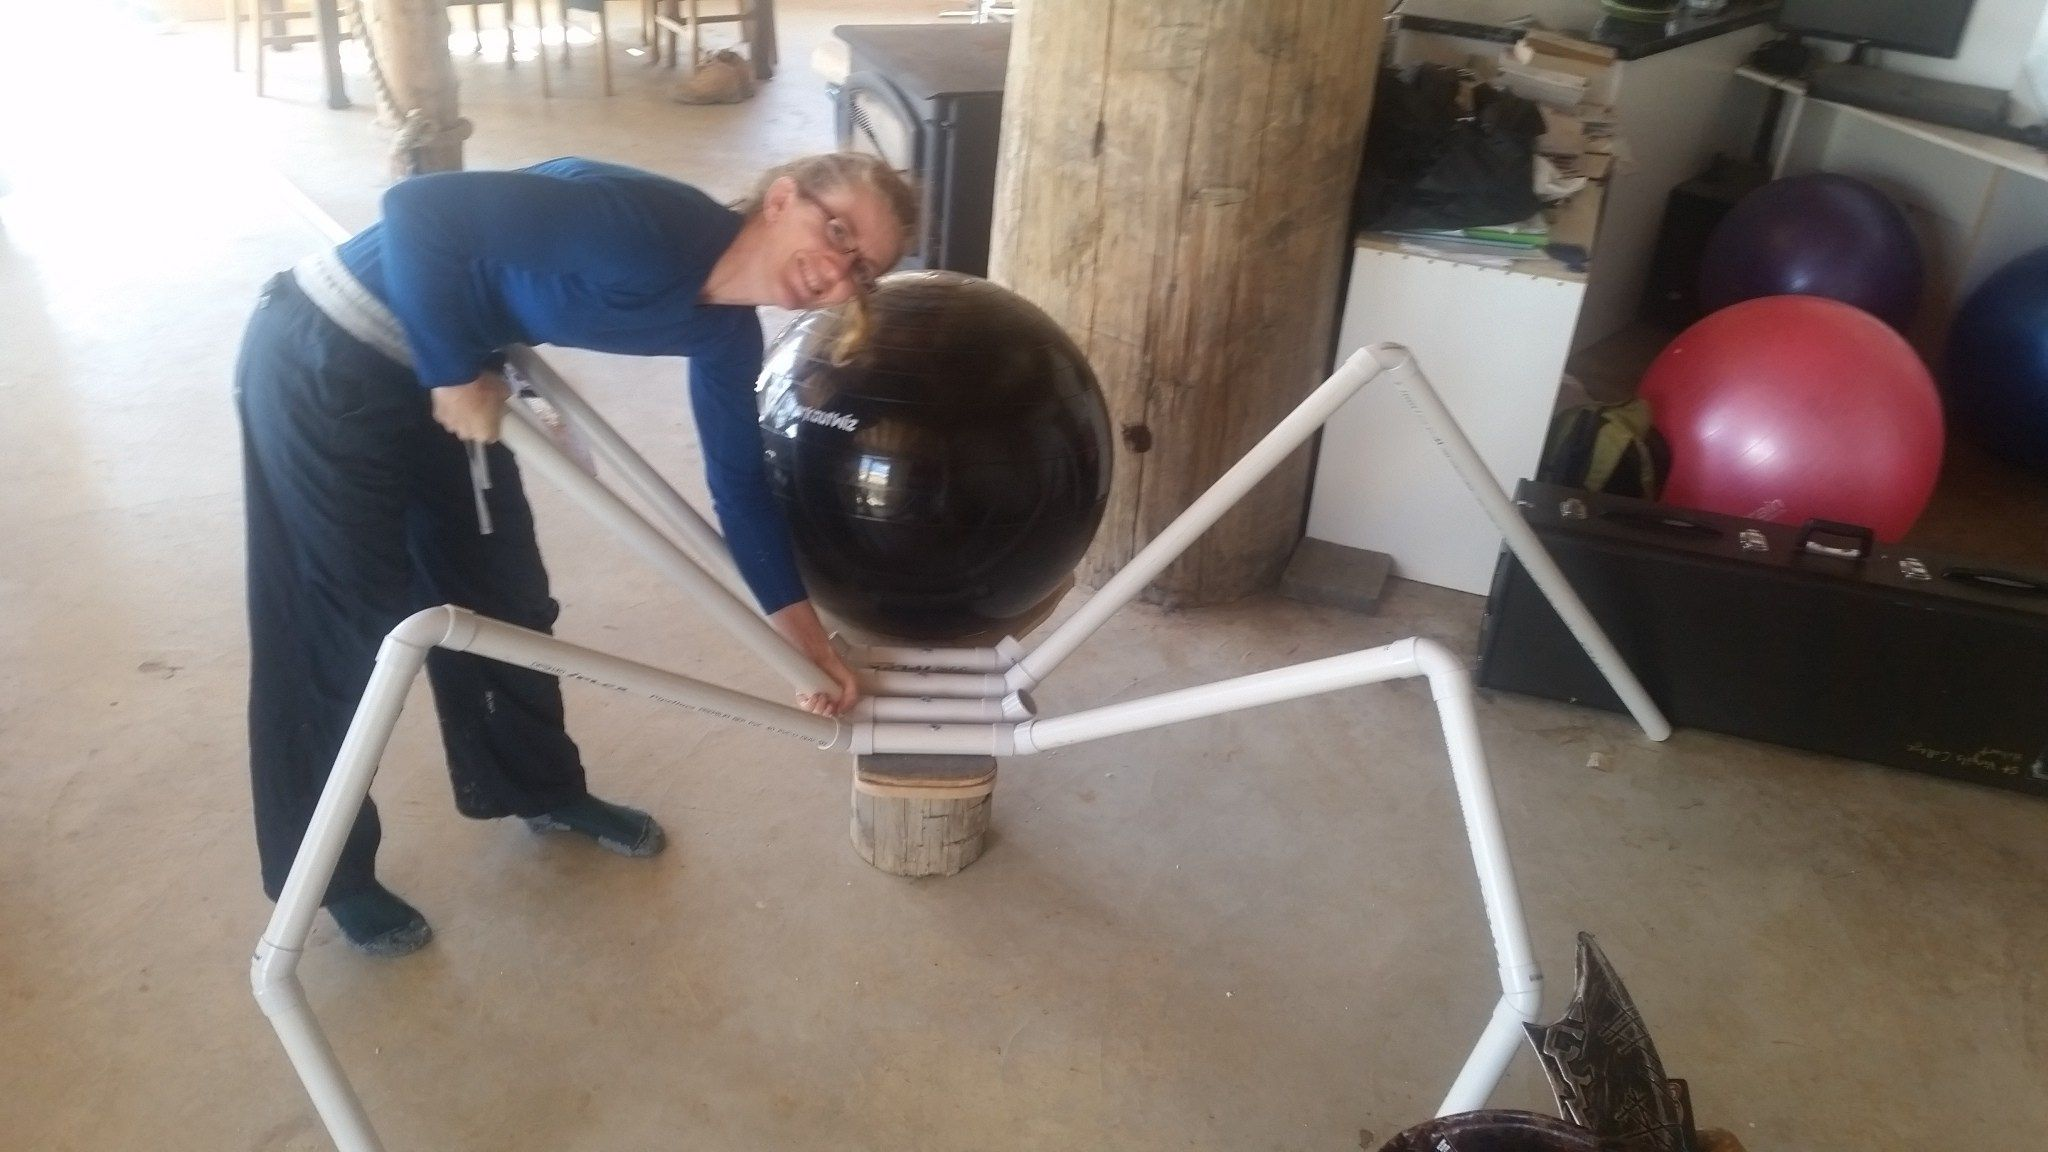 Halloween Projector 2020 Spider Building a Giant Spider   Halloween spider decorations, Creepy